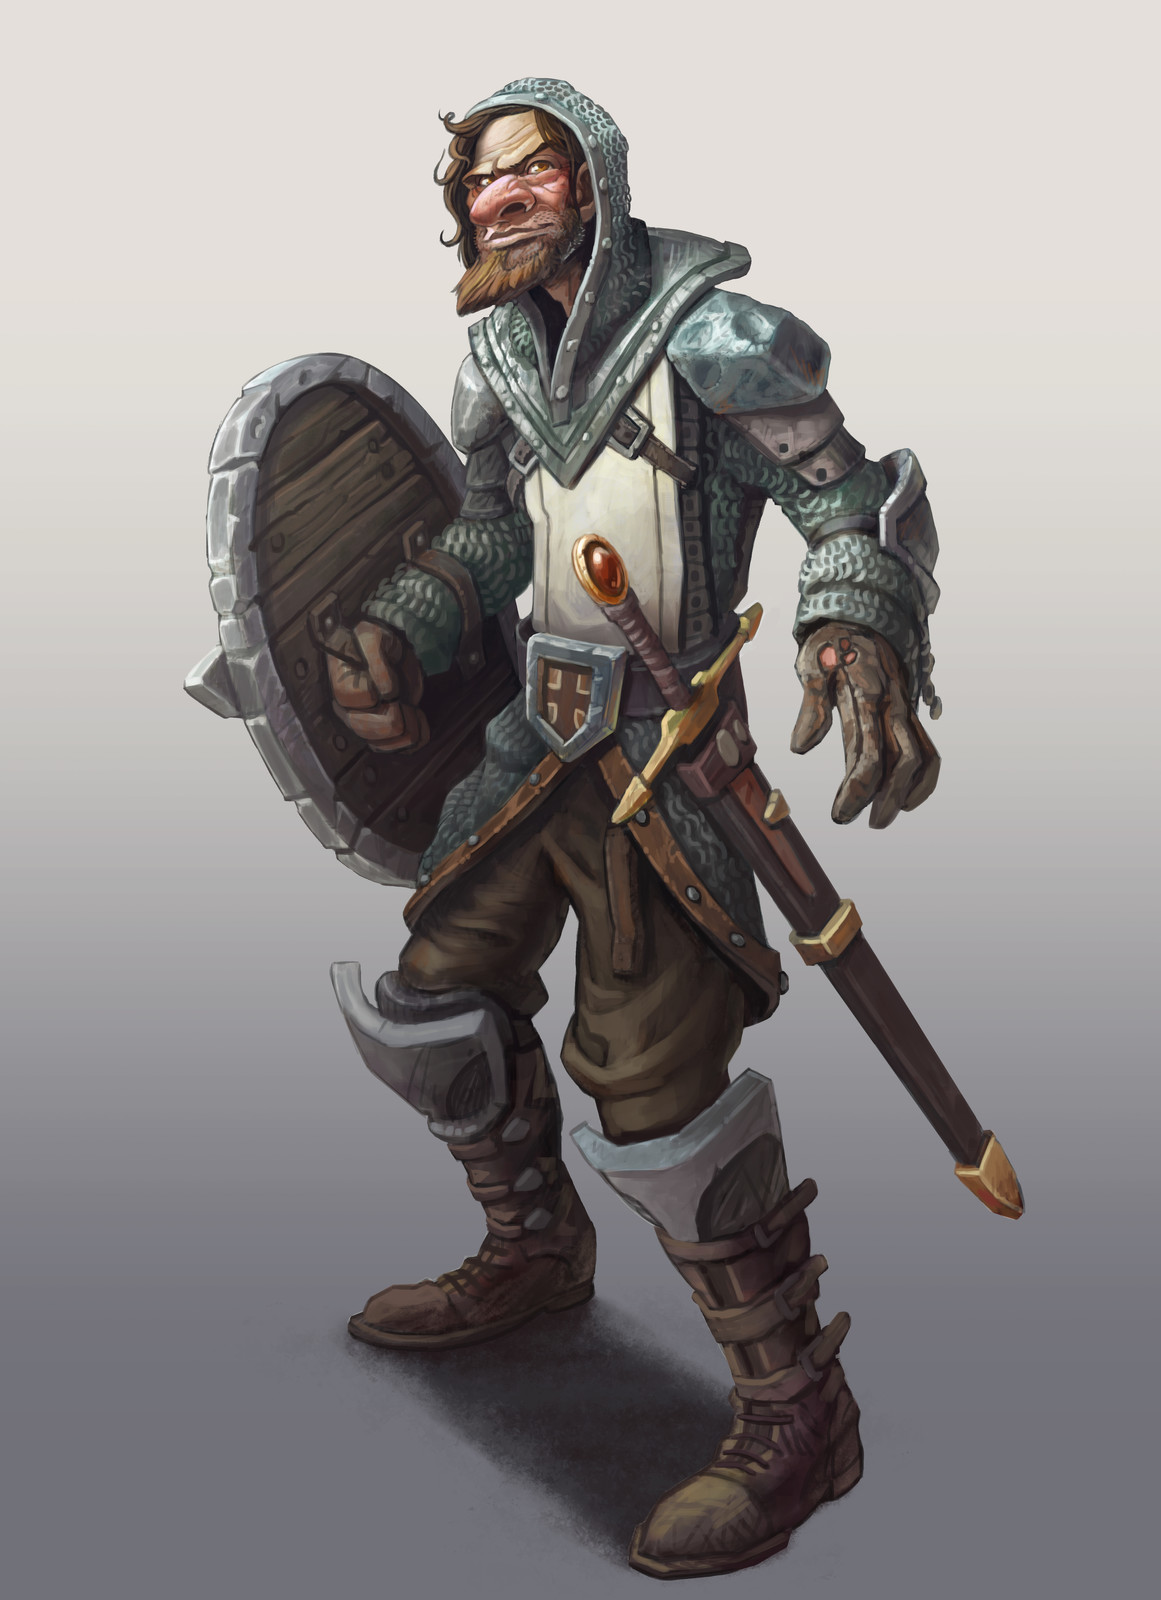 Squire Guy